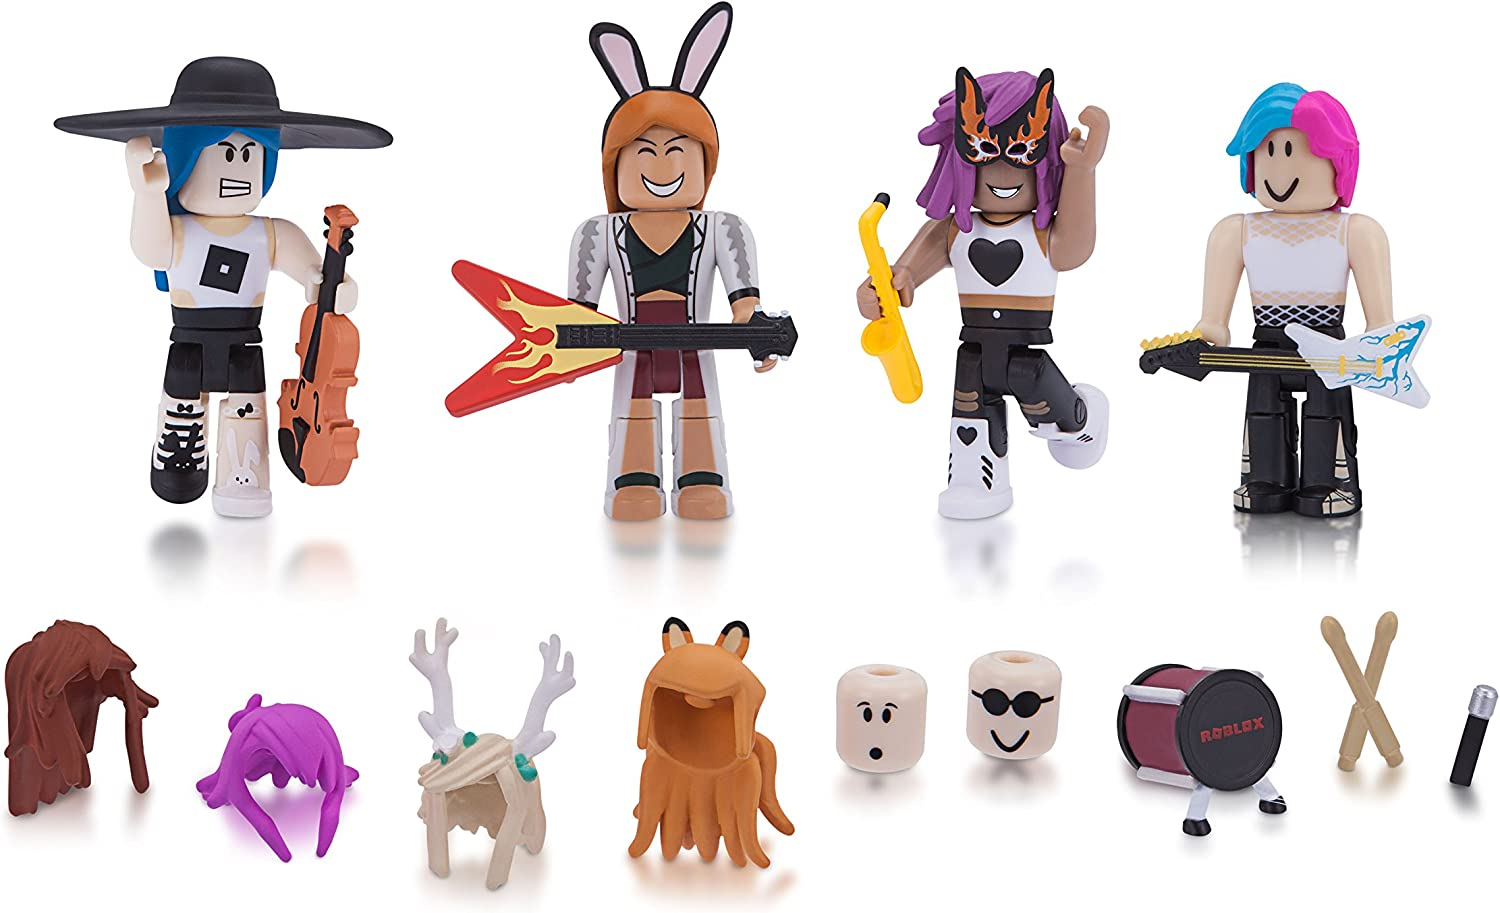 30 Cool Roblox Characters For Girls Amazon Com Roblox Celebrity Collection Superstars Four Figure Pack Includes Exclusive Virtual Item Toys Games